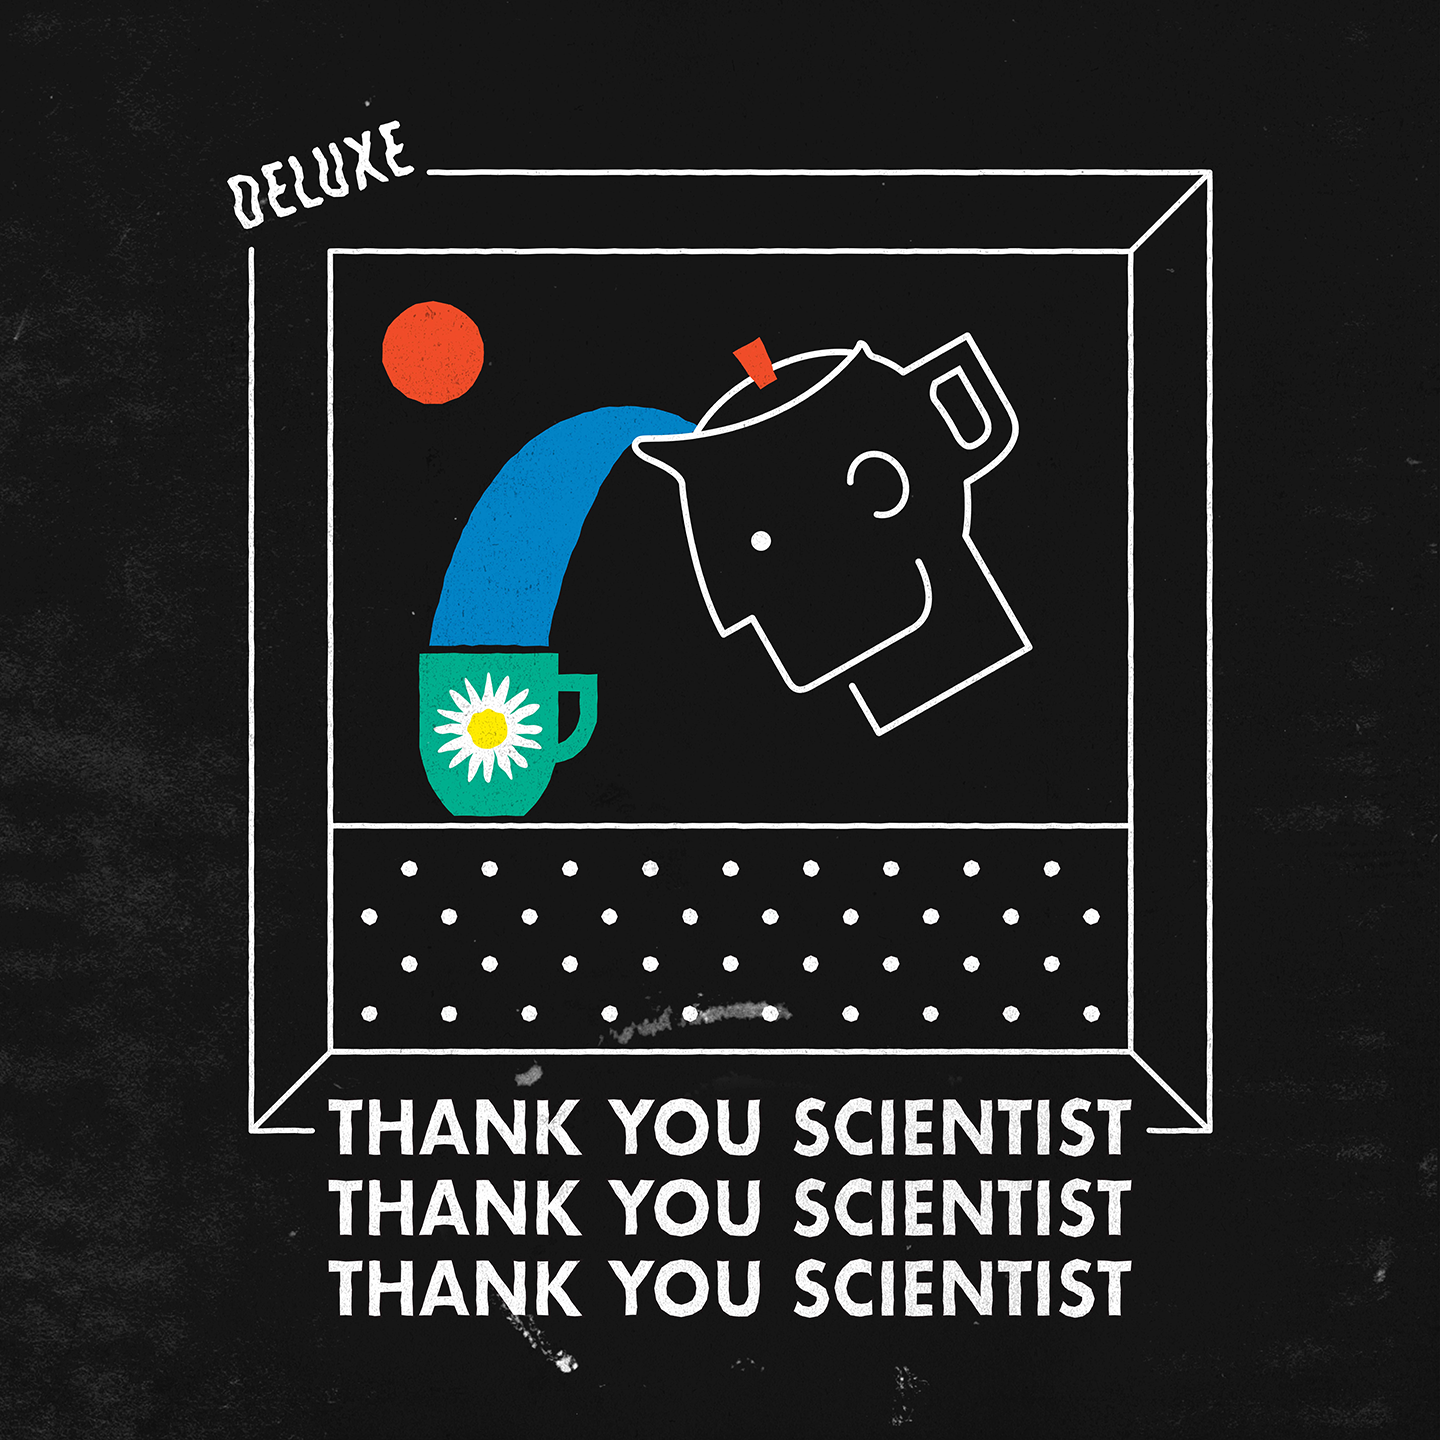 T Shirt designs for Thank You Scientist